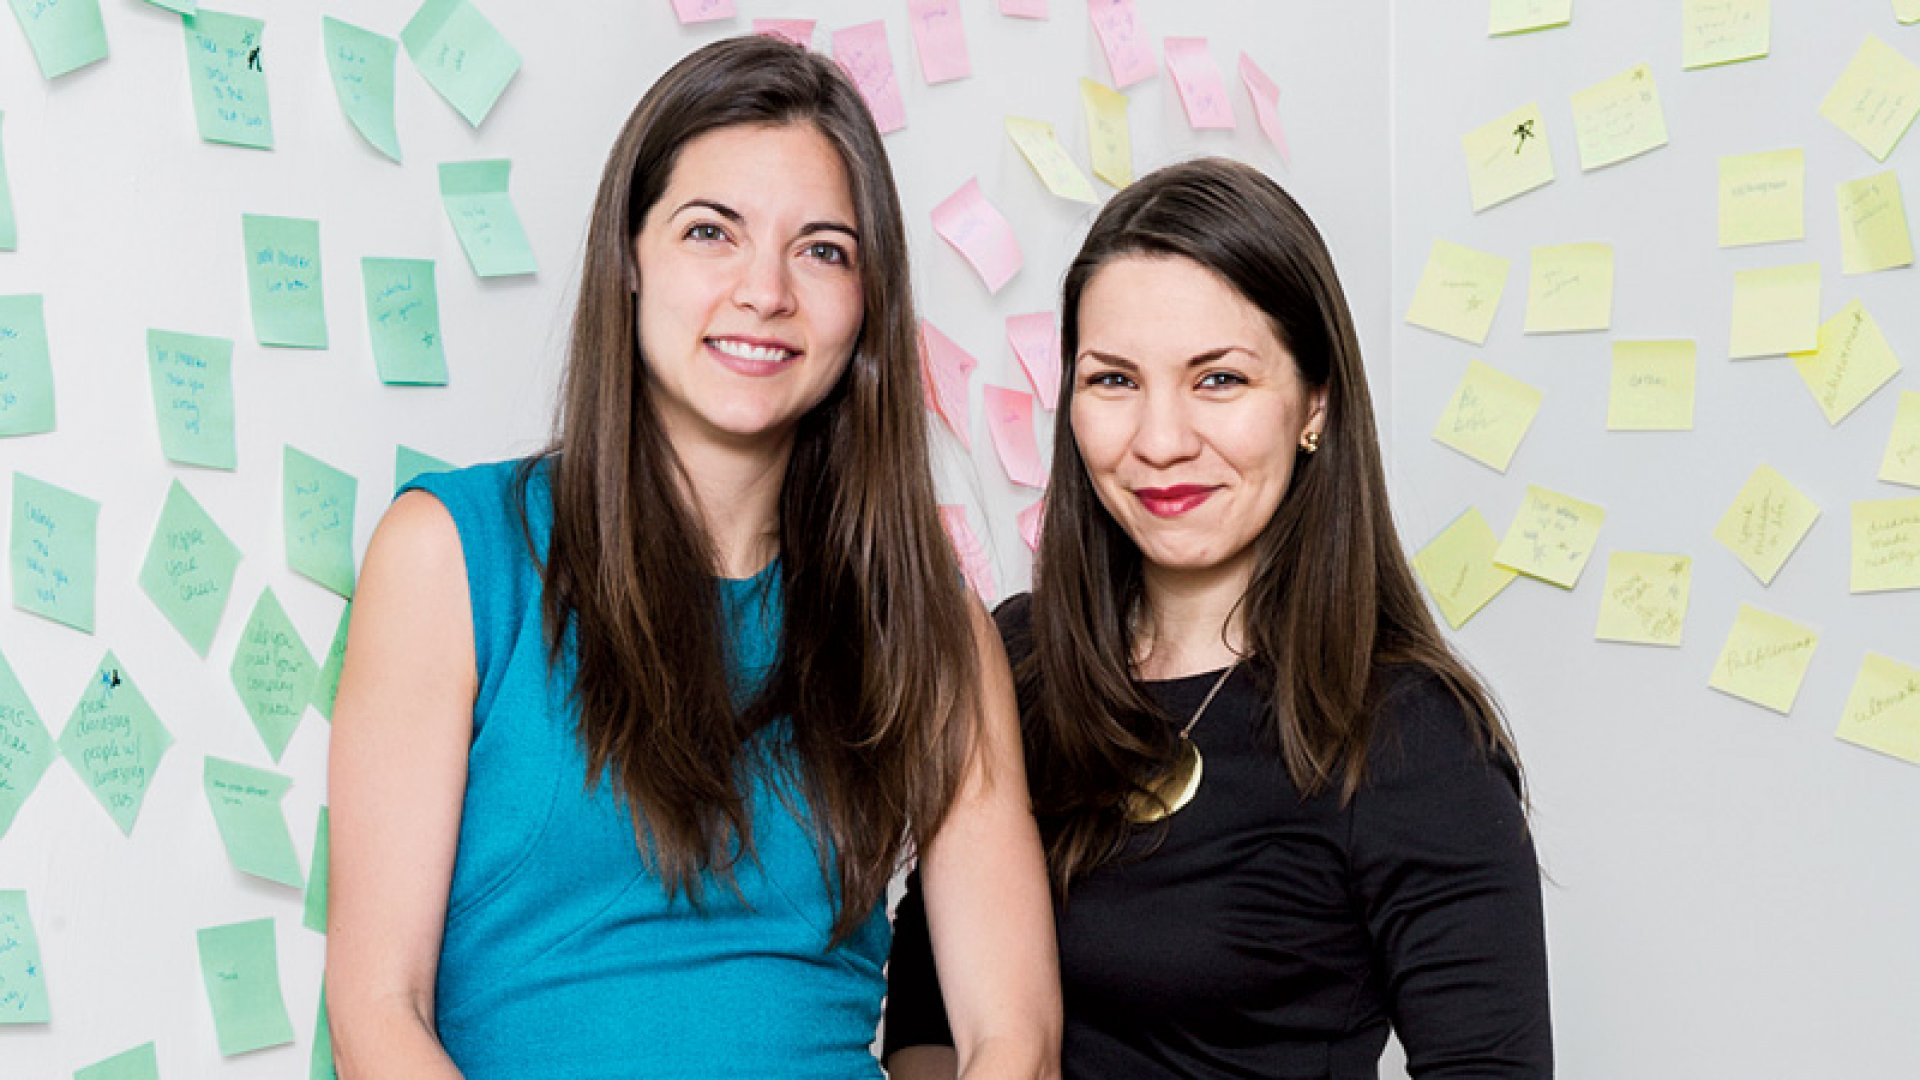 The Muse's co-founders (from left) Kathryn Minshew and Alex Cavoulacos, along with Melissa McCreery (not pictured), started the company to become a clearinghouse for career advice. They're getting there. 